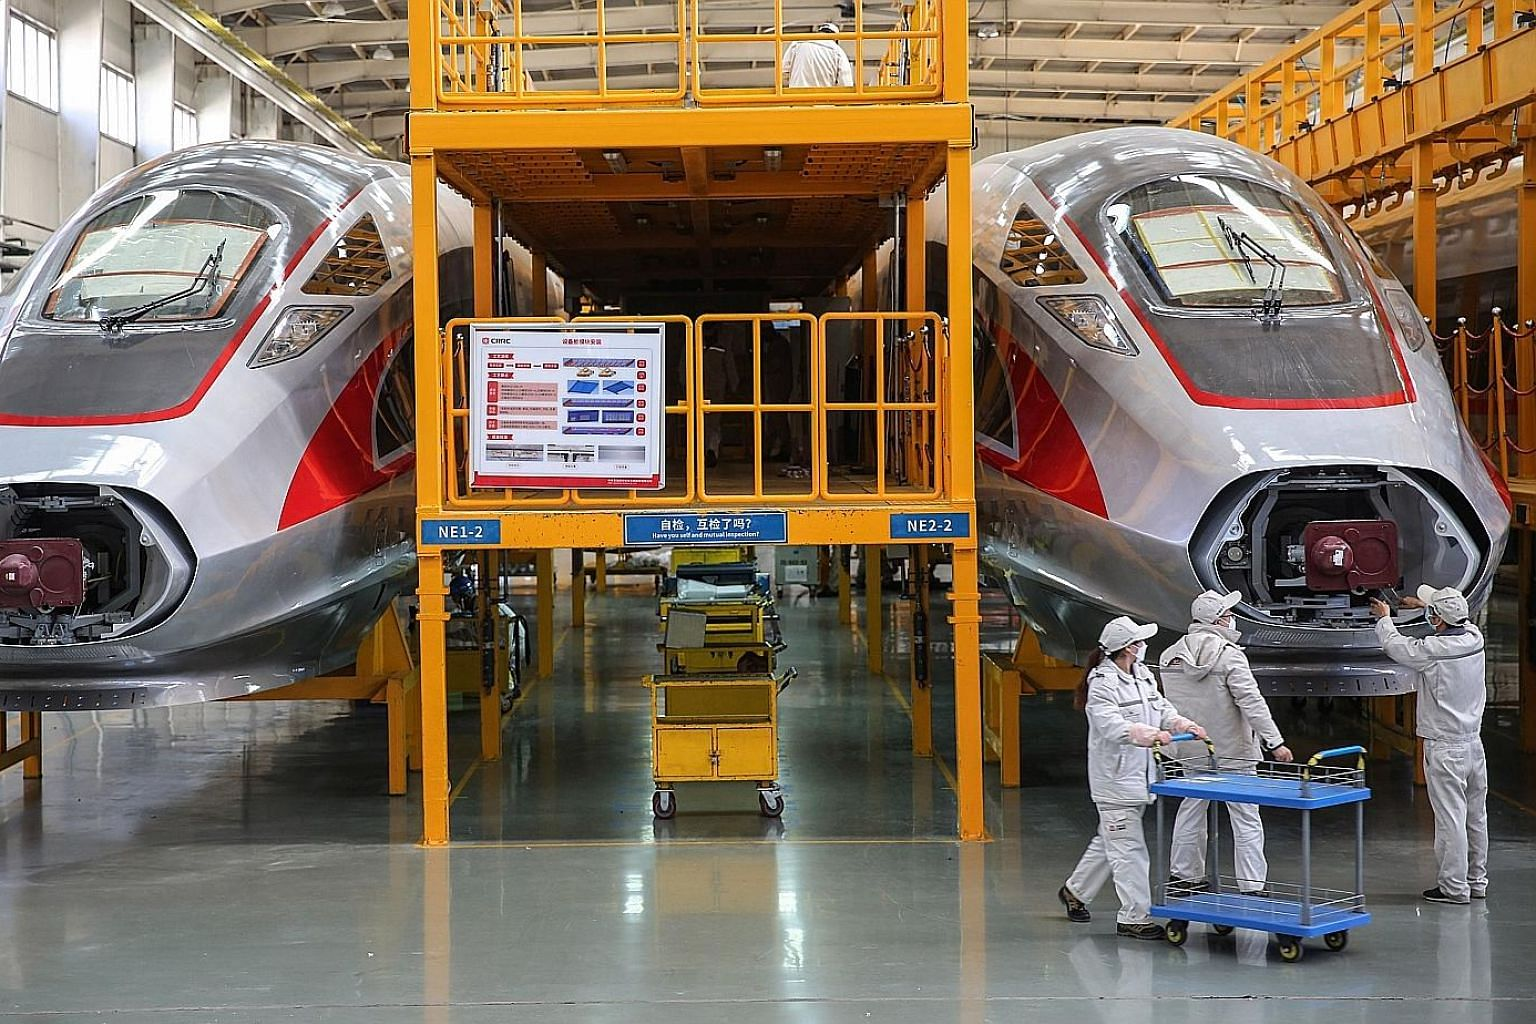 Workers checking on newly made bullet trains at a factory in Qingdao in China's eastern Shandong province in March. China's factory activity unexpectedly returned to growth last month, but with many trading partners still restricted due to the corona